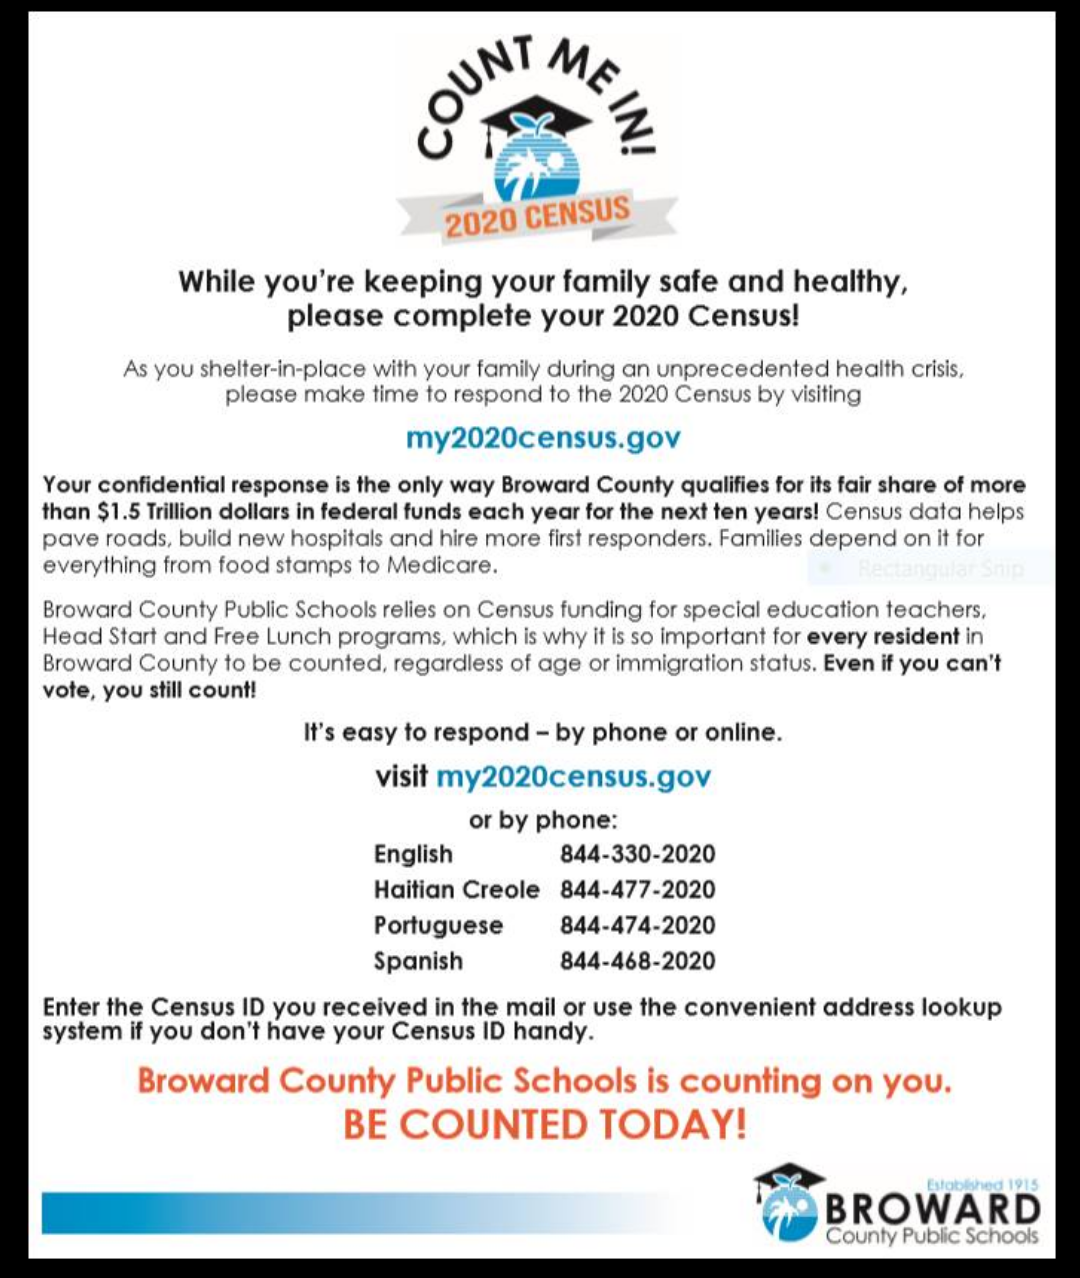 Make sure you count! Log on to my2020Census.gov and do the Census as soon as you can. The Census is confidential and taking it ensures that Broward County gets its share of 1.5 Trillion dollars in funding. If you don't vote, you still count!